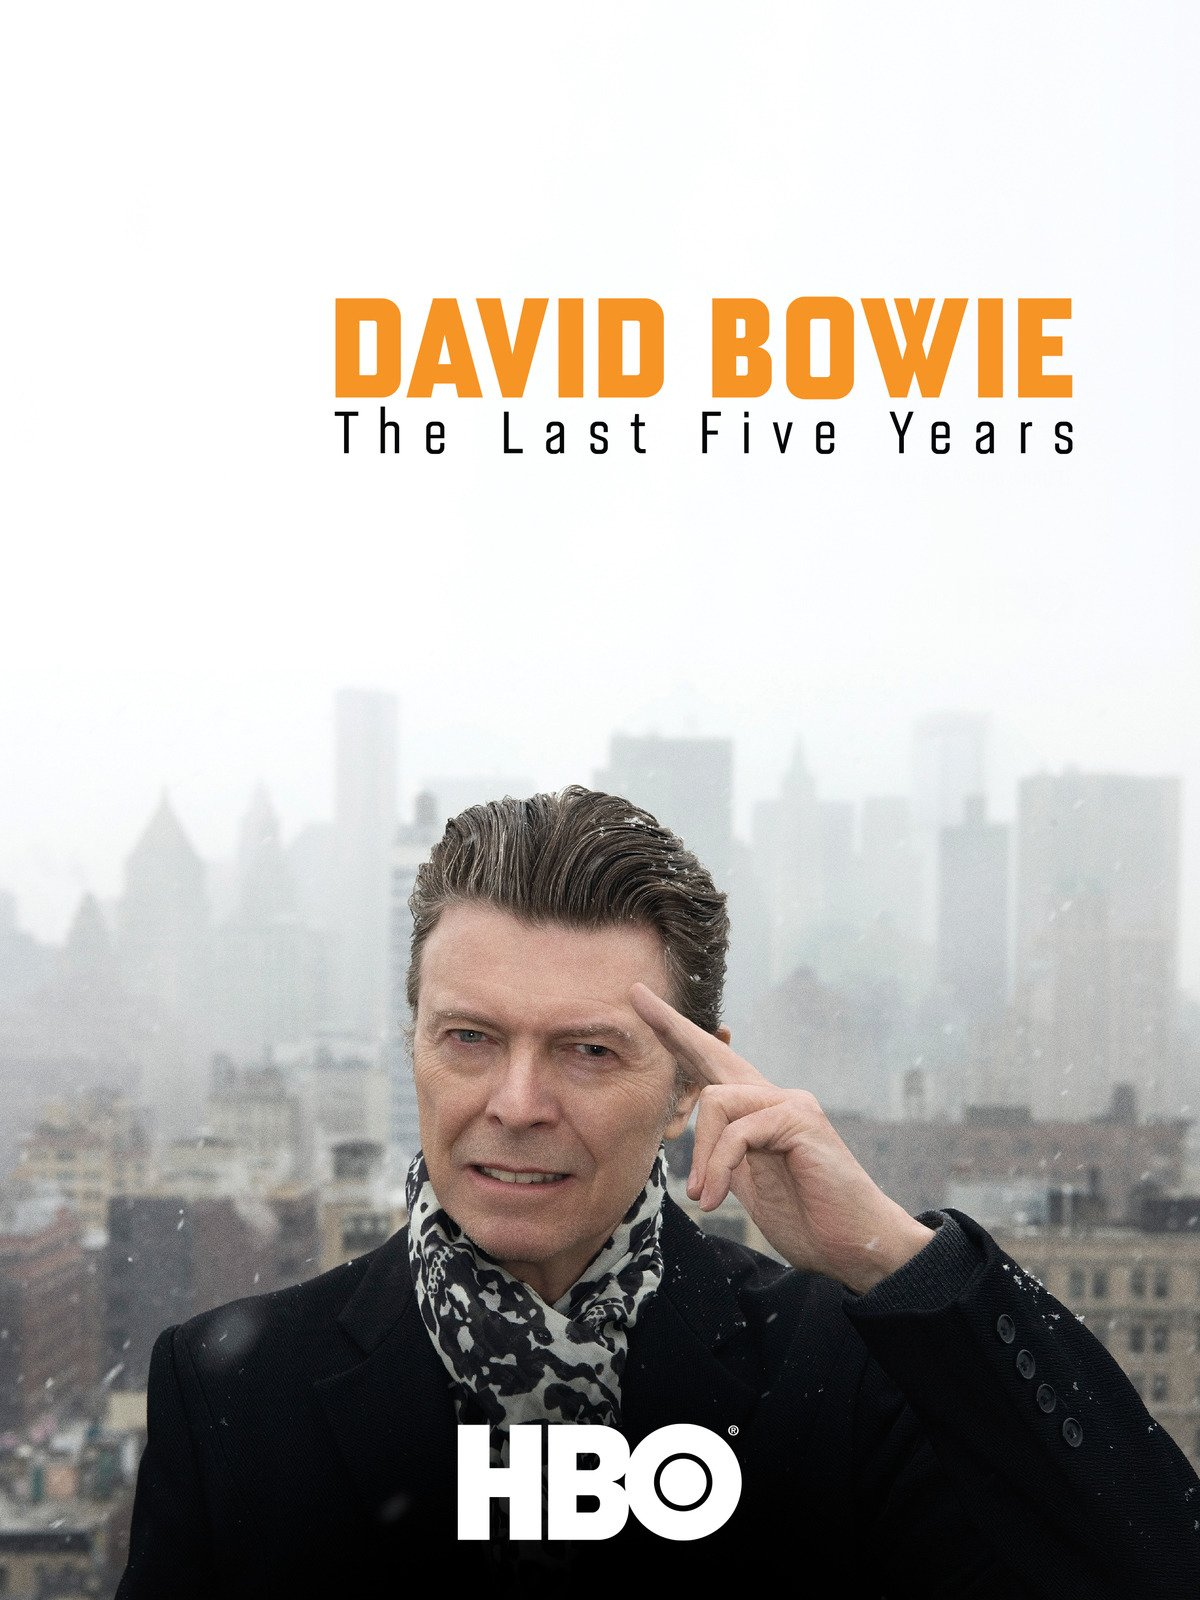 Amazon.com: Watch David Bowie: The Last Five Years | Prime Video